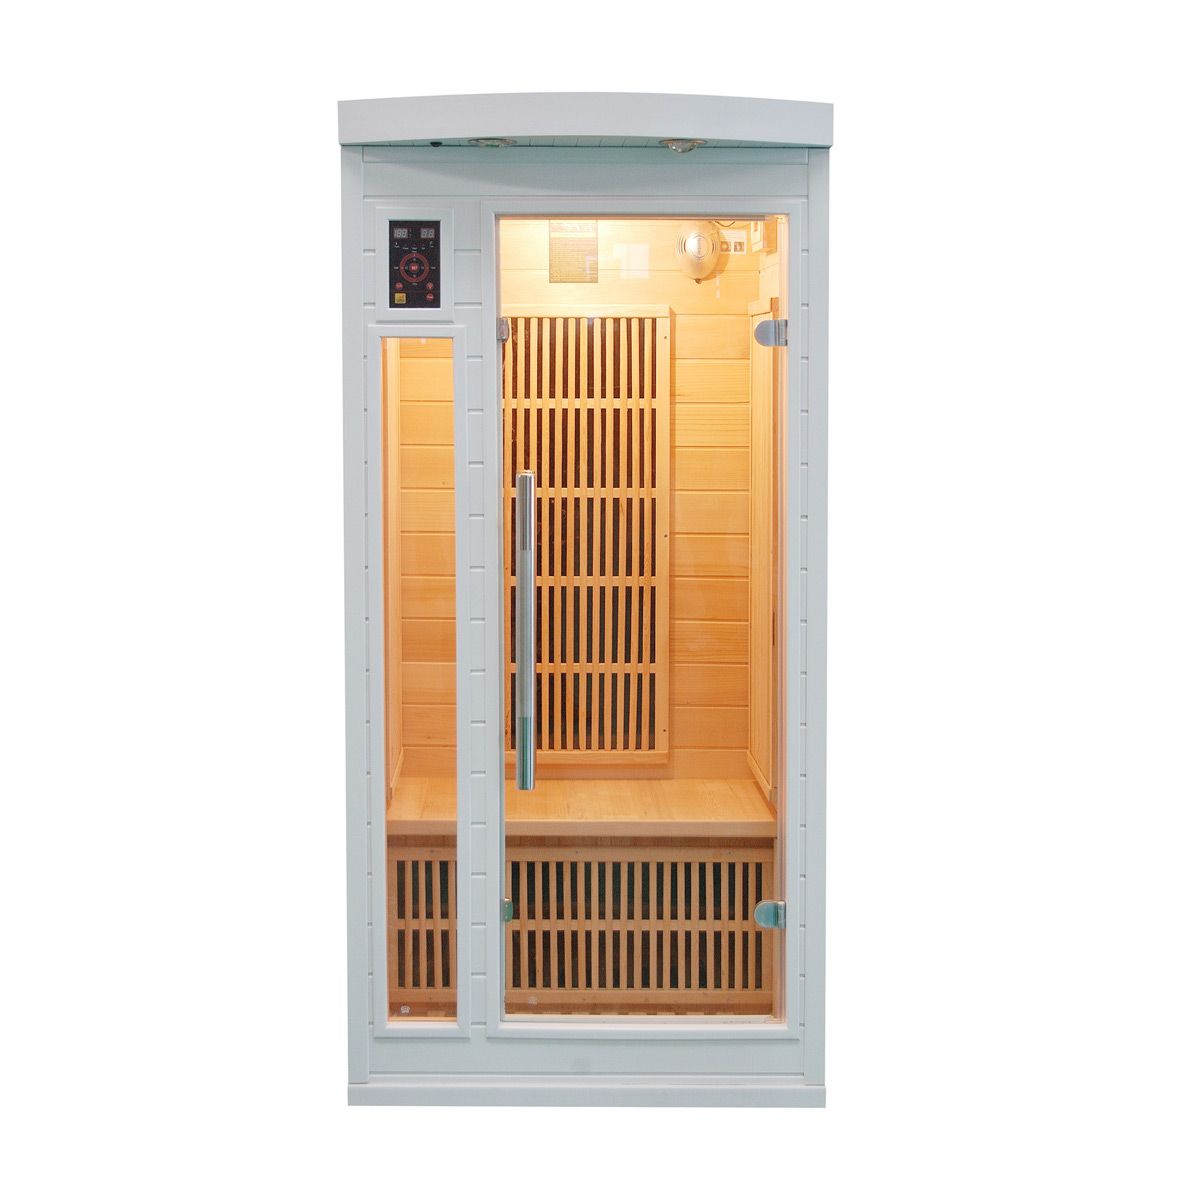 Sauna infrarouge soleil blanc 1 place france sauna - Sauna infrarouge 2 places ...